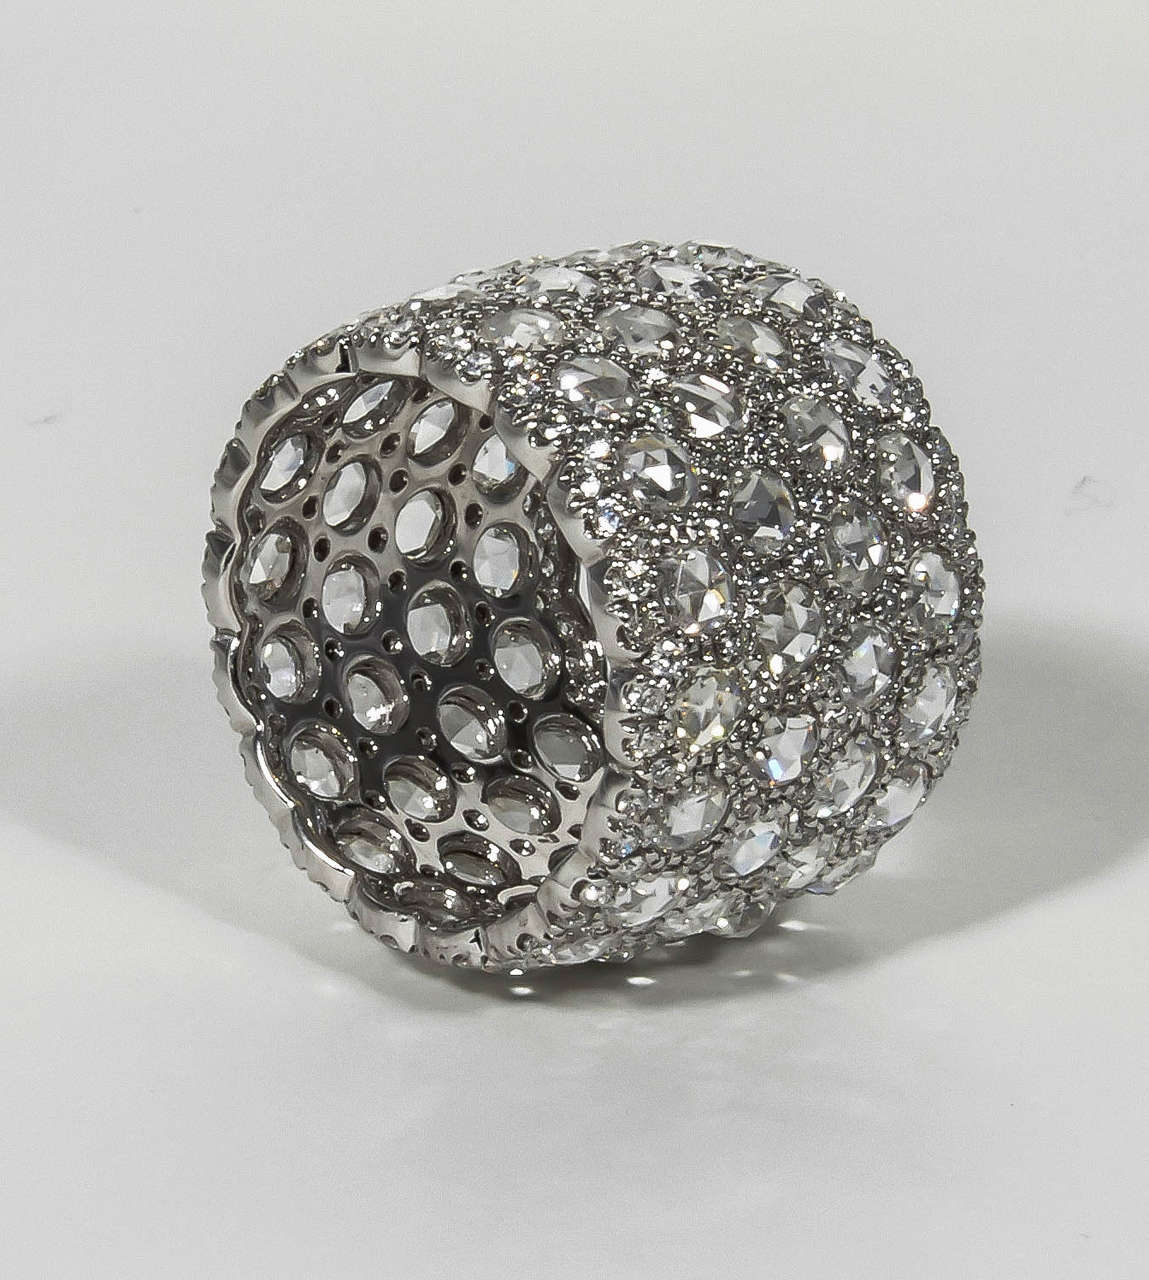 6.32 carats of white rose and full cut diamonds set in 18k white gold.  Just over 15 mm wide.